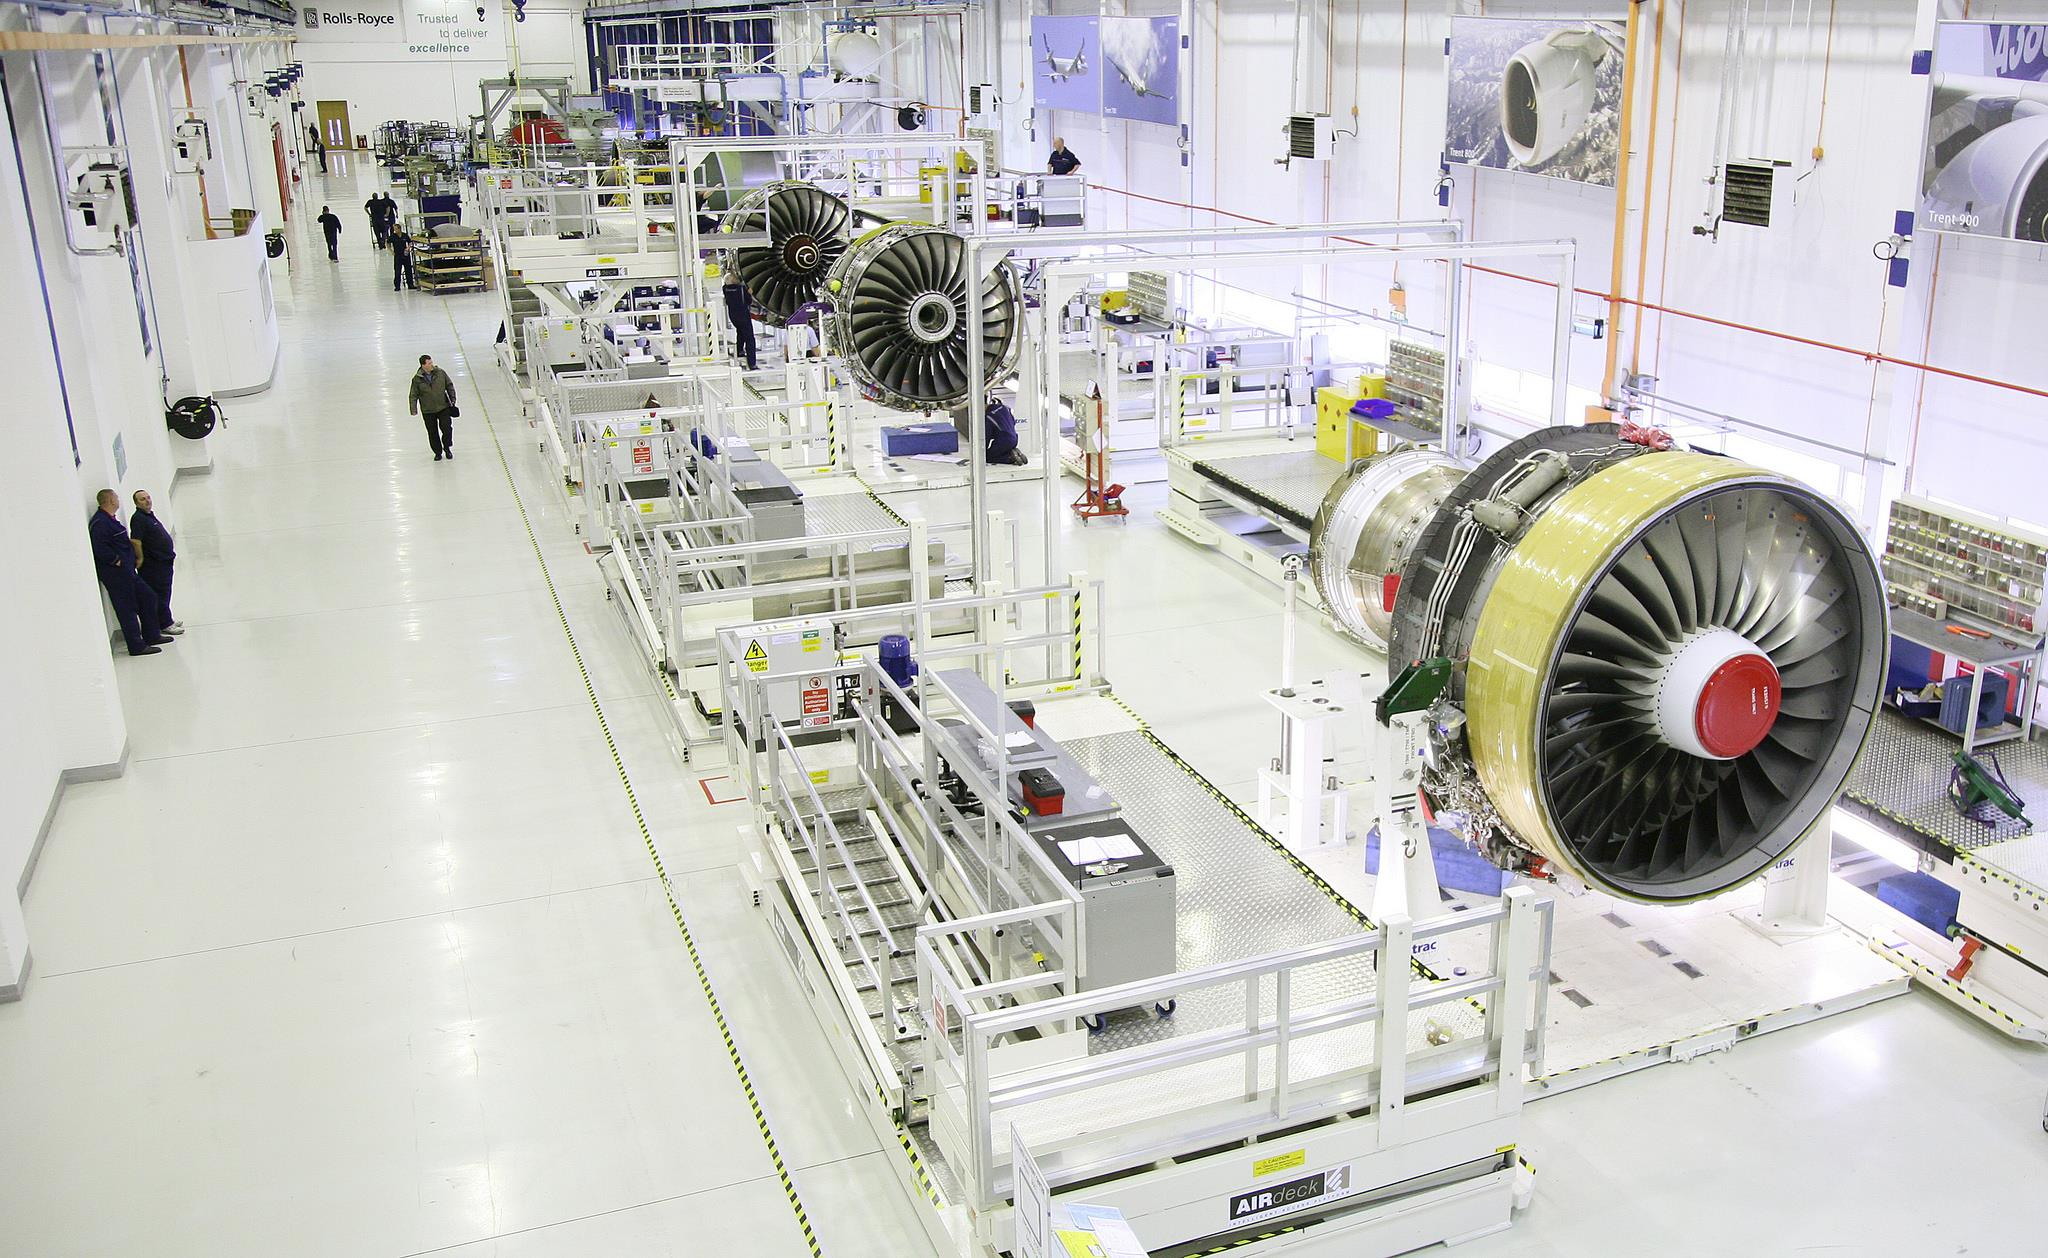 Emirates_Rolls Royce_Engine_order_April 2015